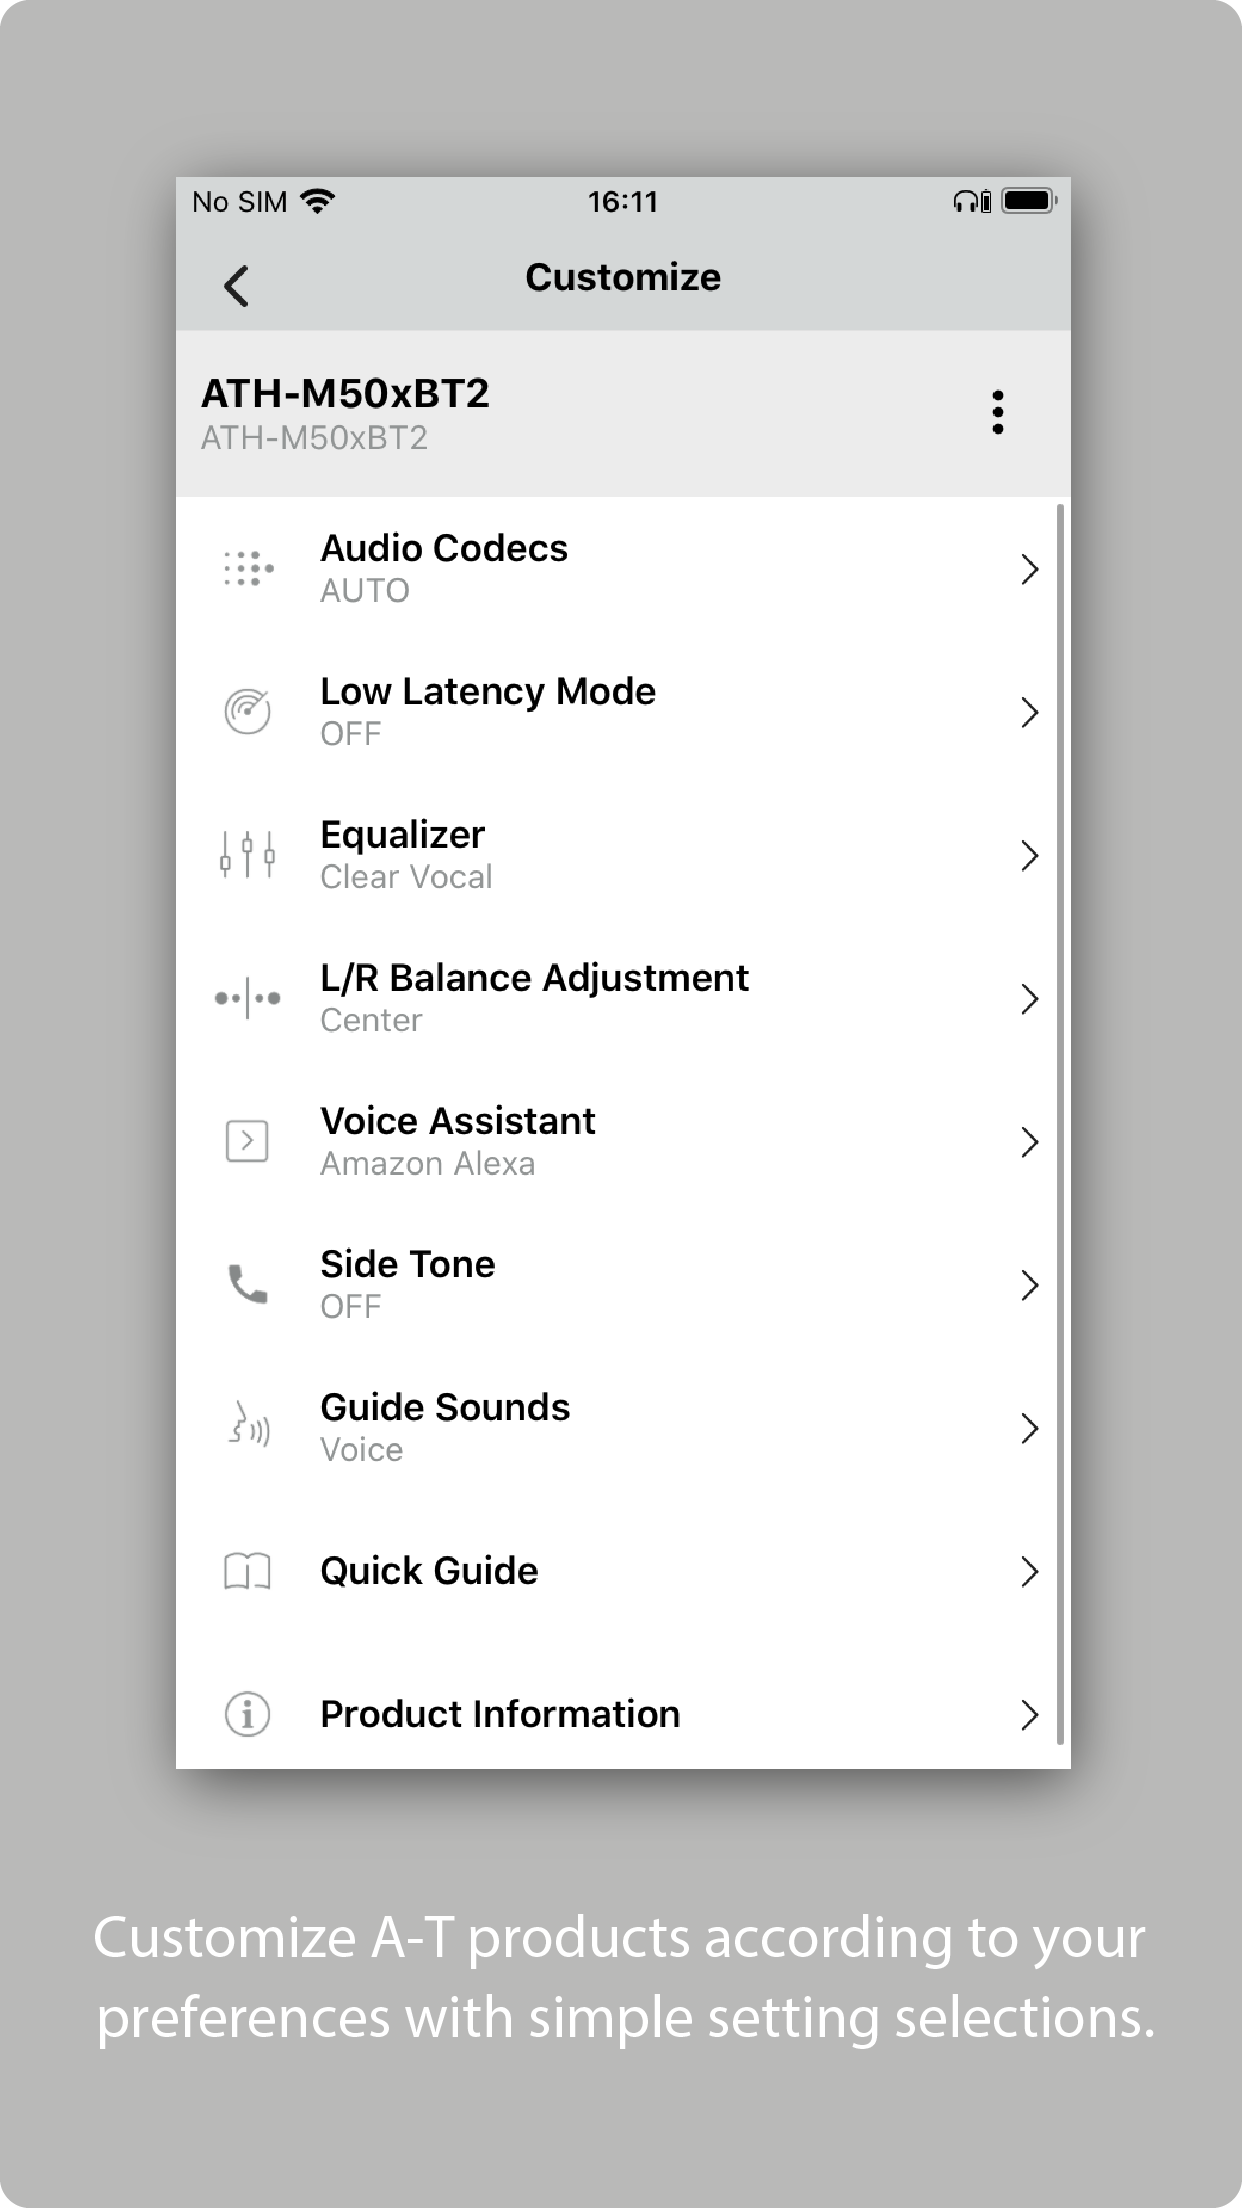 Customize A-T products according to your preferences with simple setting selections.